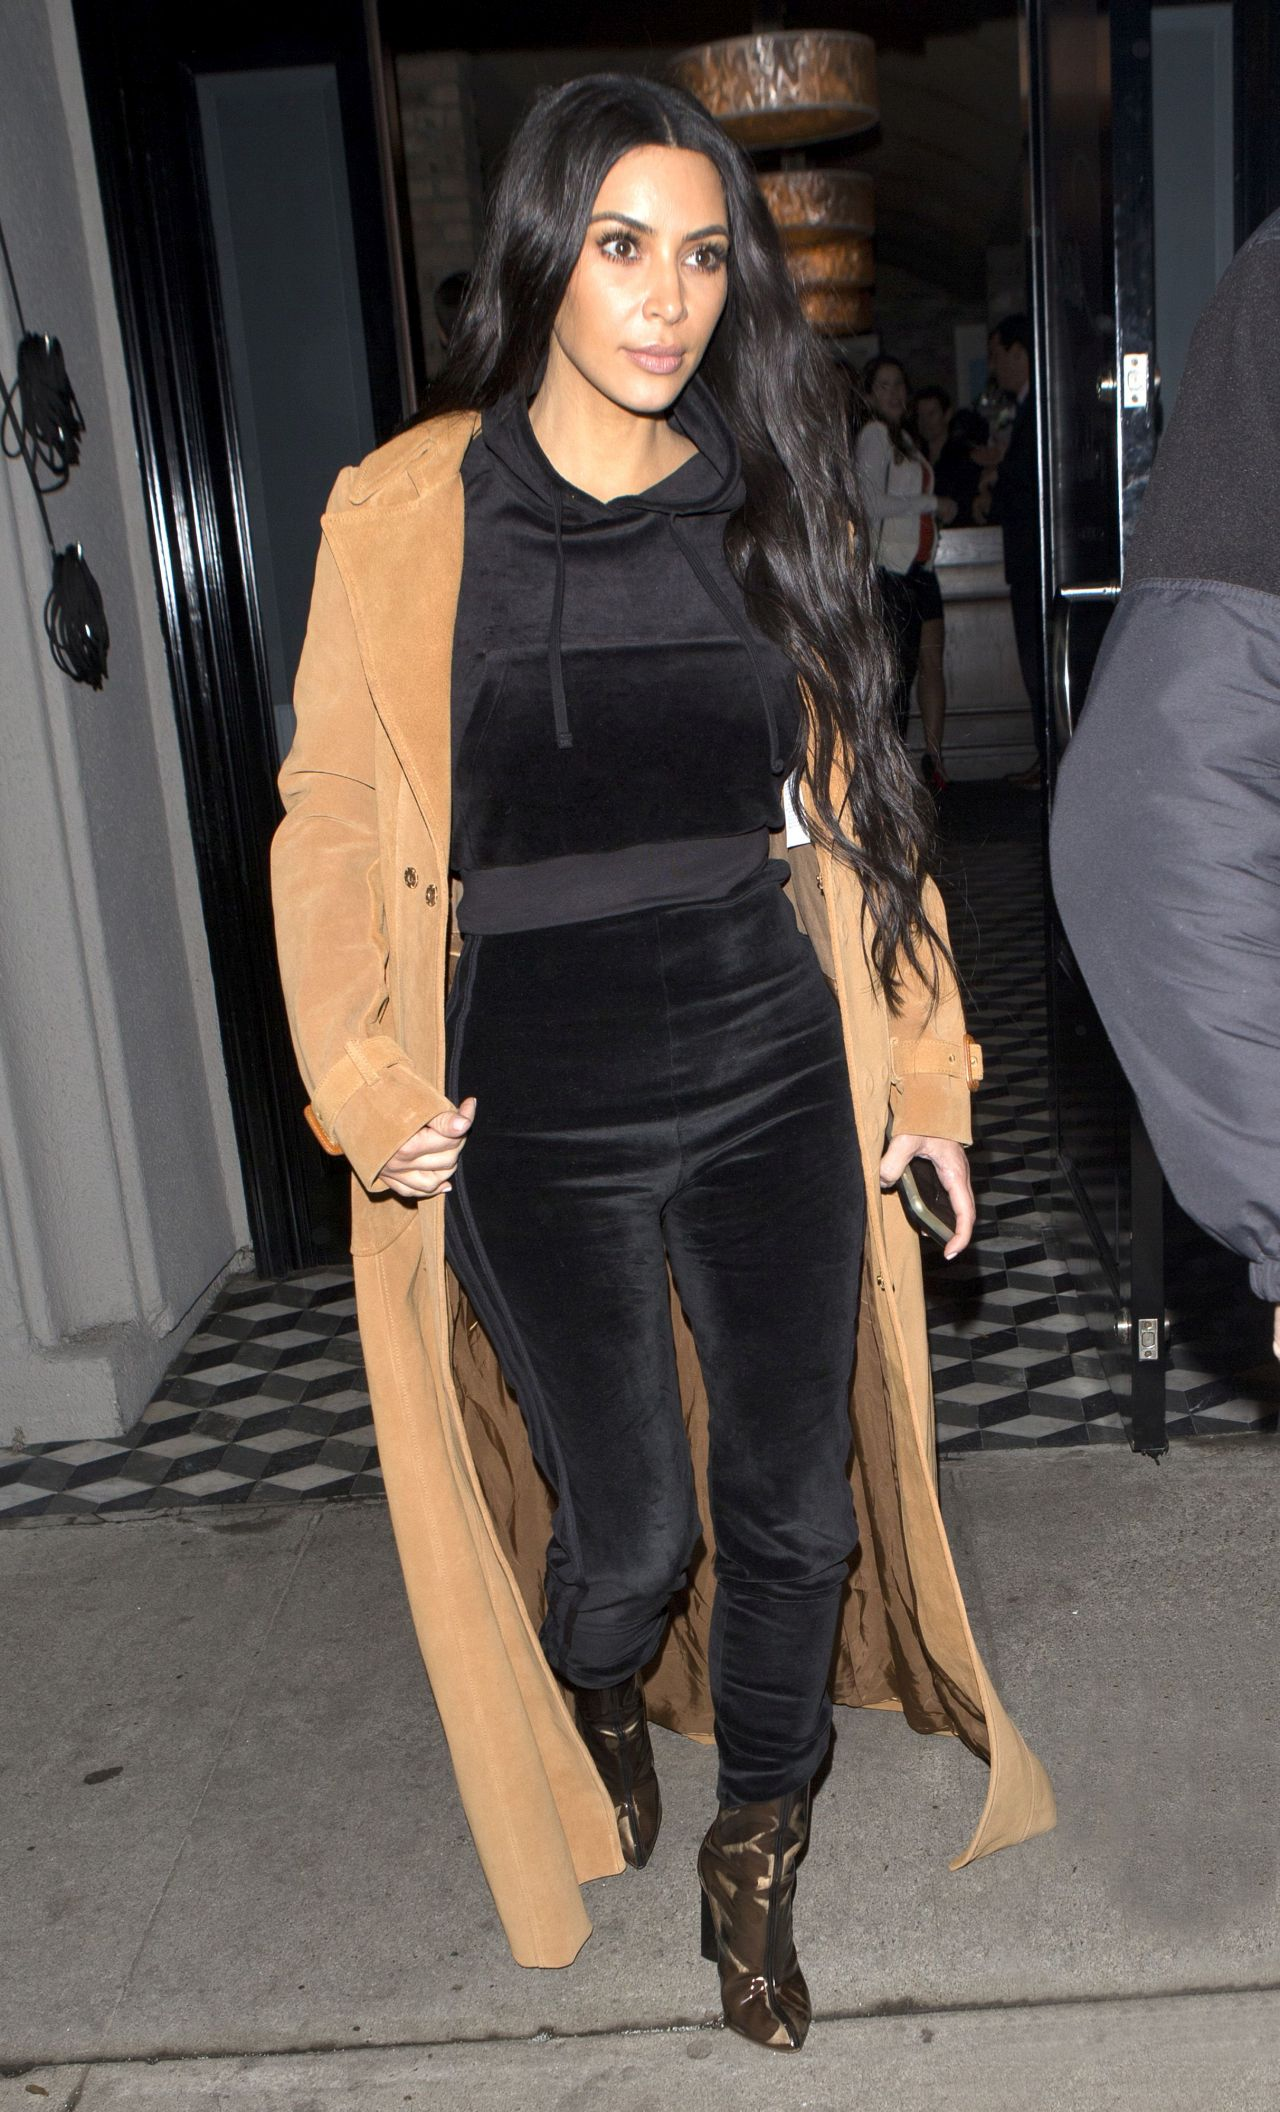 Kim Kardashian was seen leaving 'Craigs' Restaurant  in West Hollywood, CA <P> Pictured: Kim Kardashian <B>Ref: SPL1435571  060217  </B><BR/> Picture by: SPW / Splash News<BR/> </P><P> <B>Splash News and Pictures</B><BR/> Los Angeles:	310-821-2666<BR/> New York:	212-619-2666<BR/> London:	870-934-2666<BR/> photodesk@splashnews.com<BR/> </P>